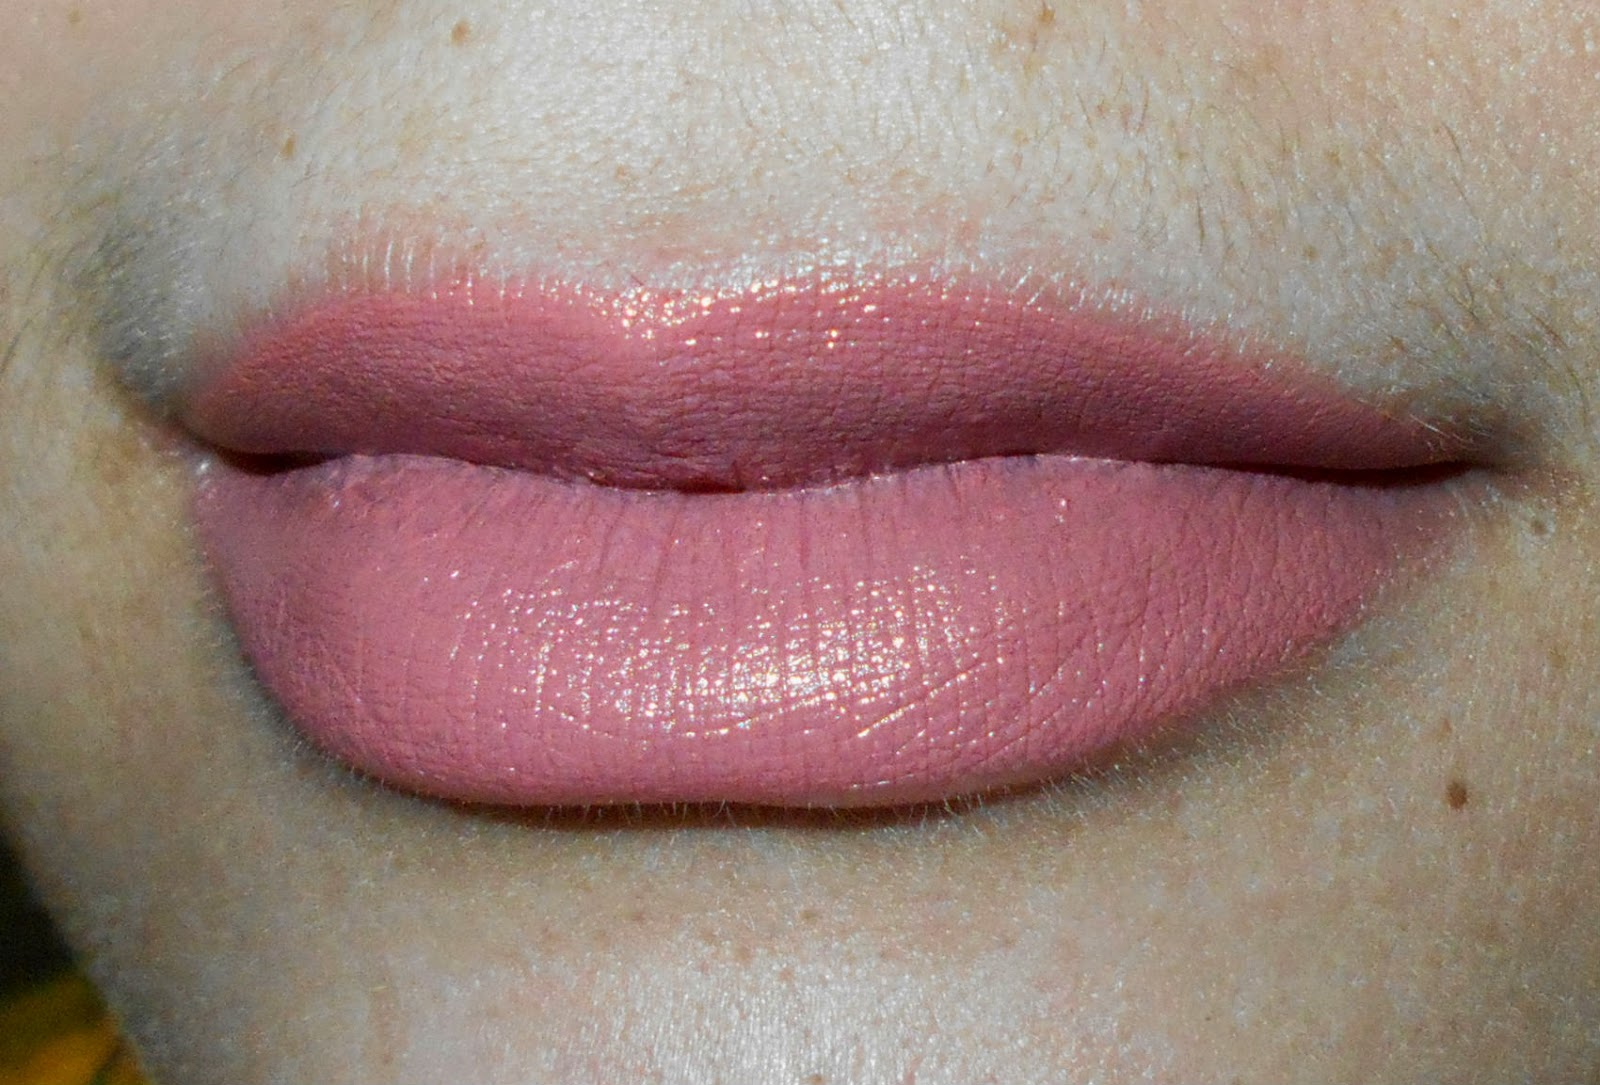 Milani Color Statement Lipsticks in Nude Creme